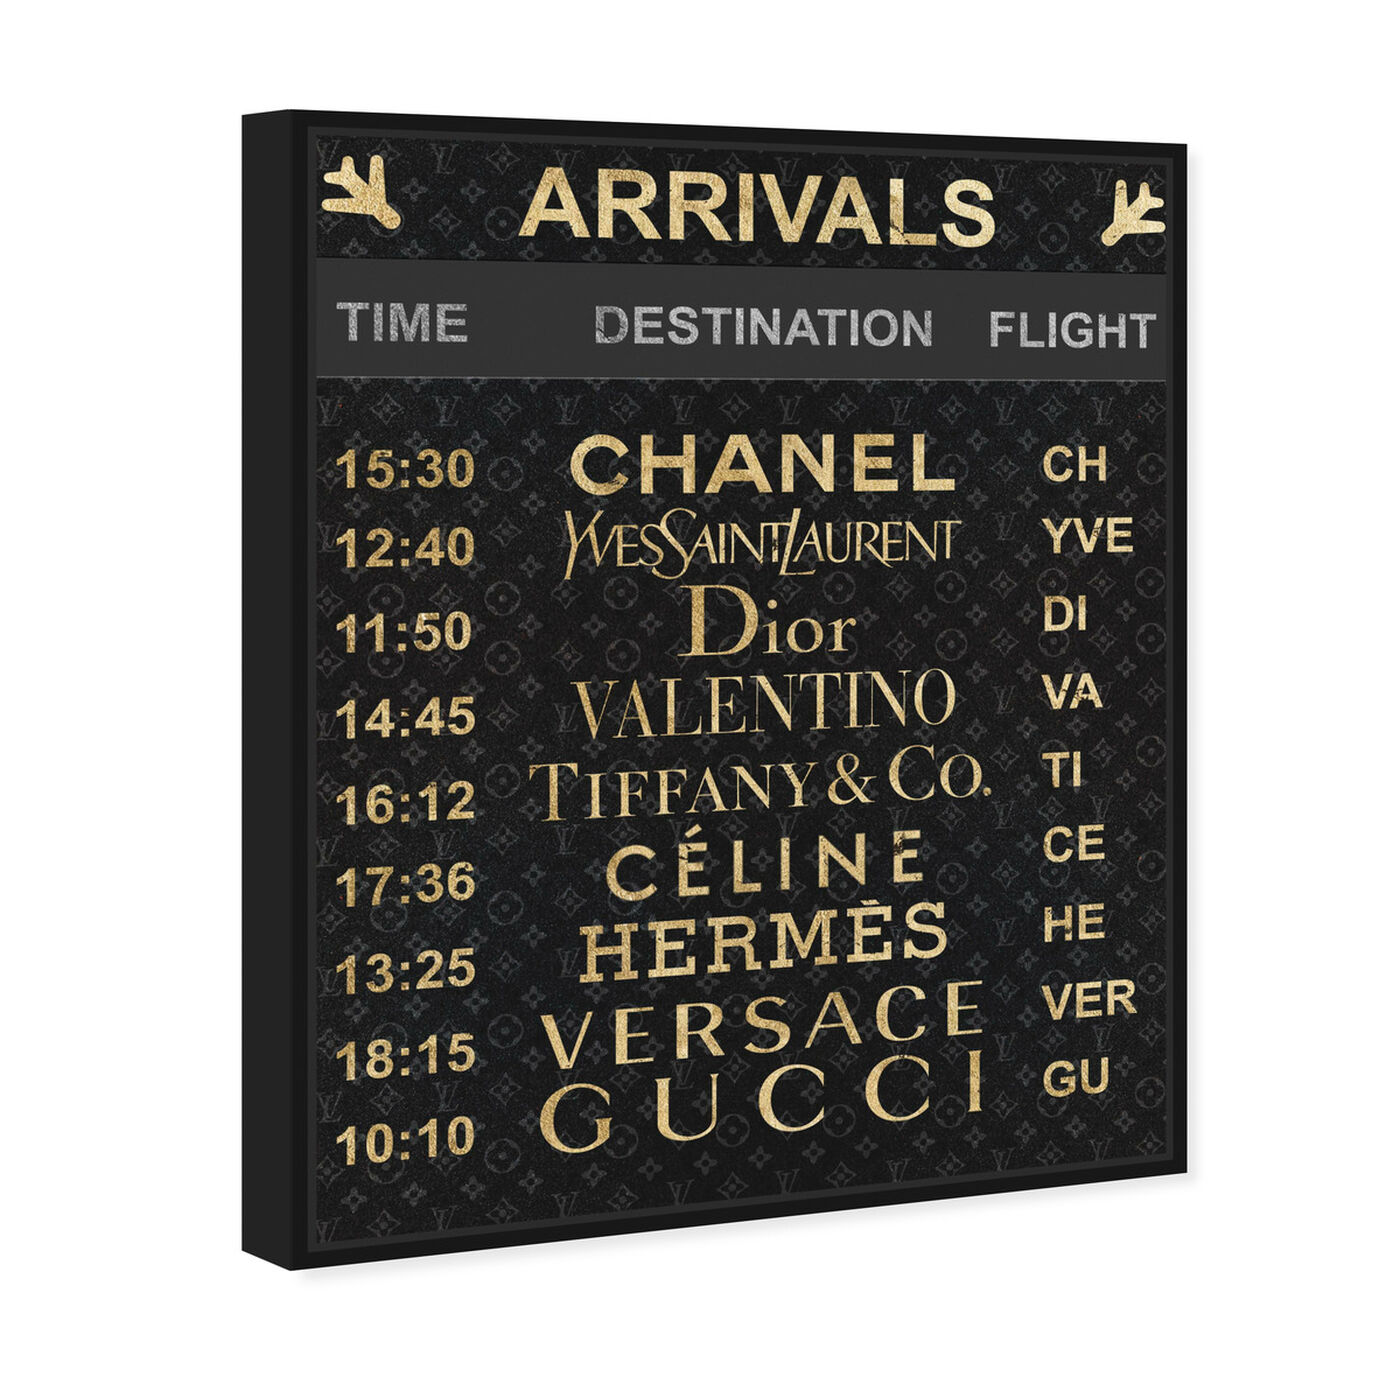 Angled view of Luxe Arrivals featuring fashion and glam and travel essentials art.